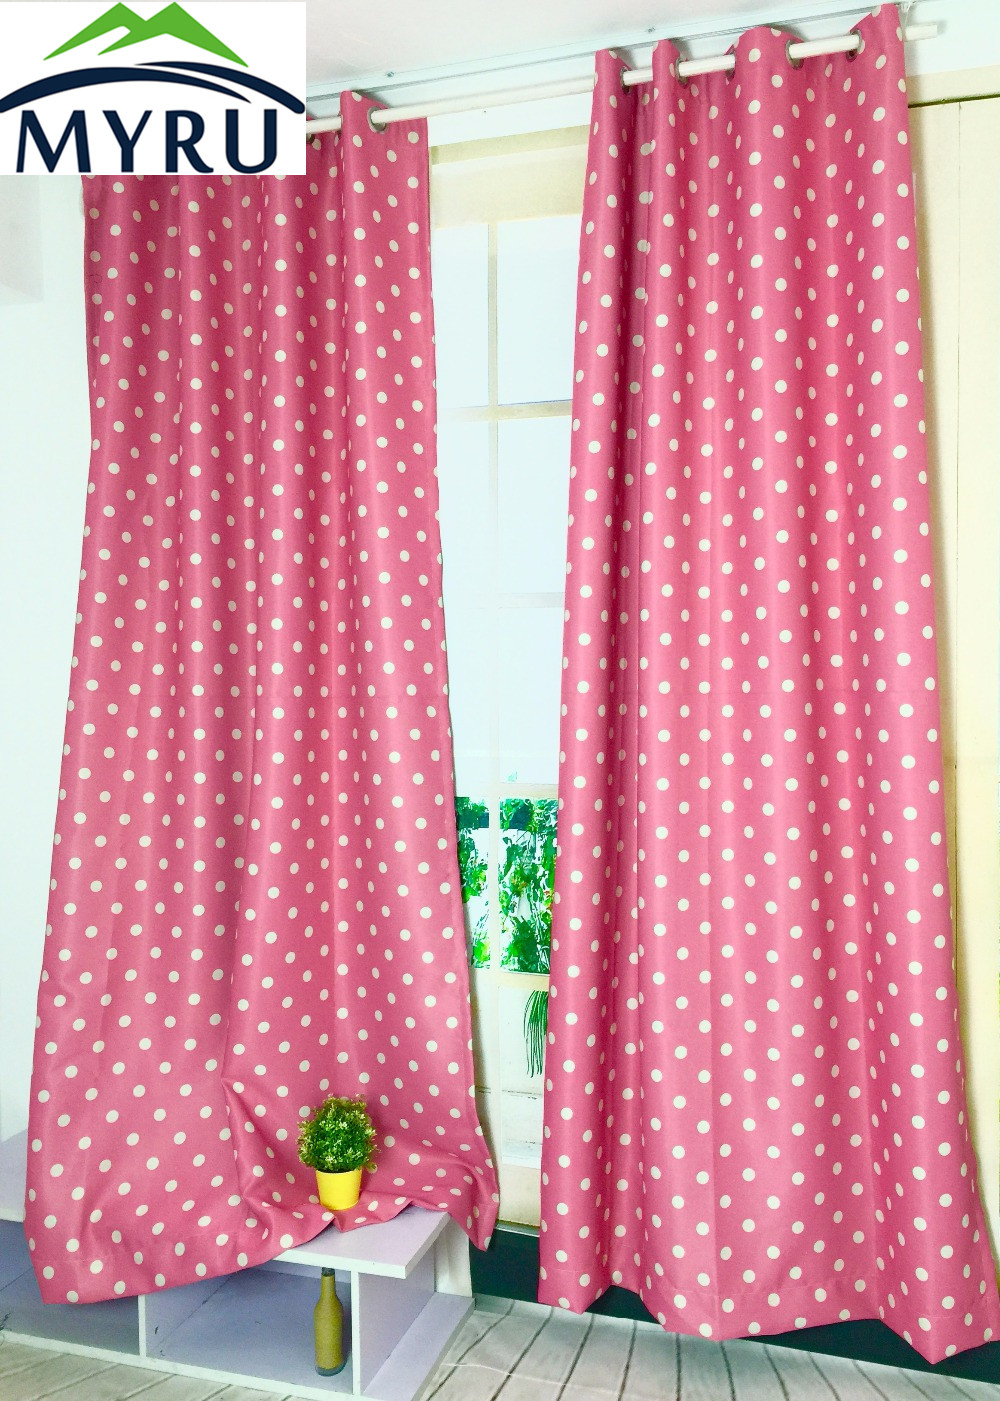 MYRU New Arrival Blue Color With White Dots Shade Cloth Curtains Pink Polka  Dot Curtains For Children Bedroom Living Room